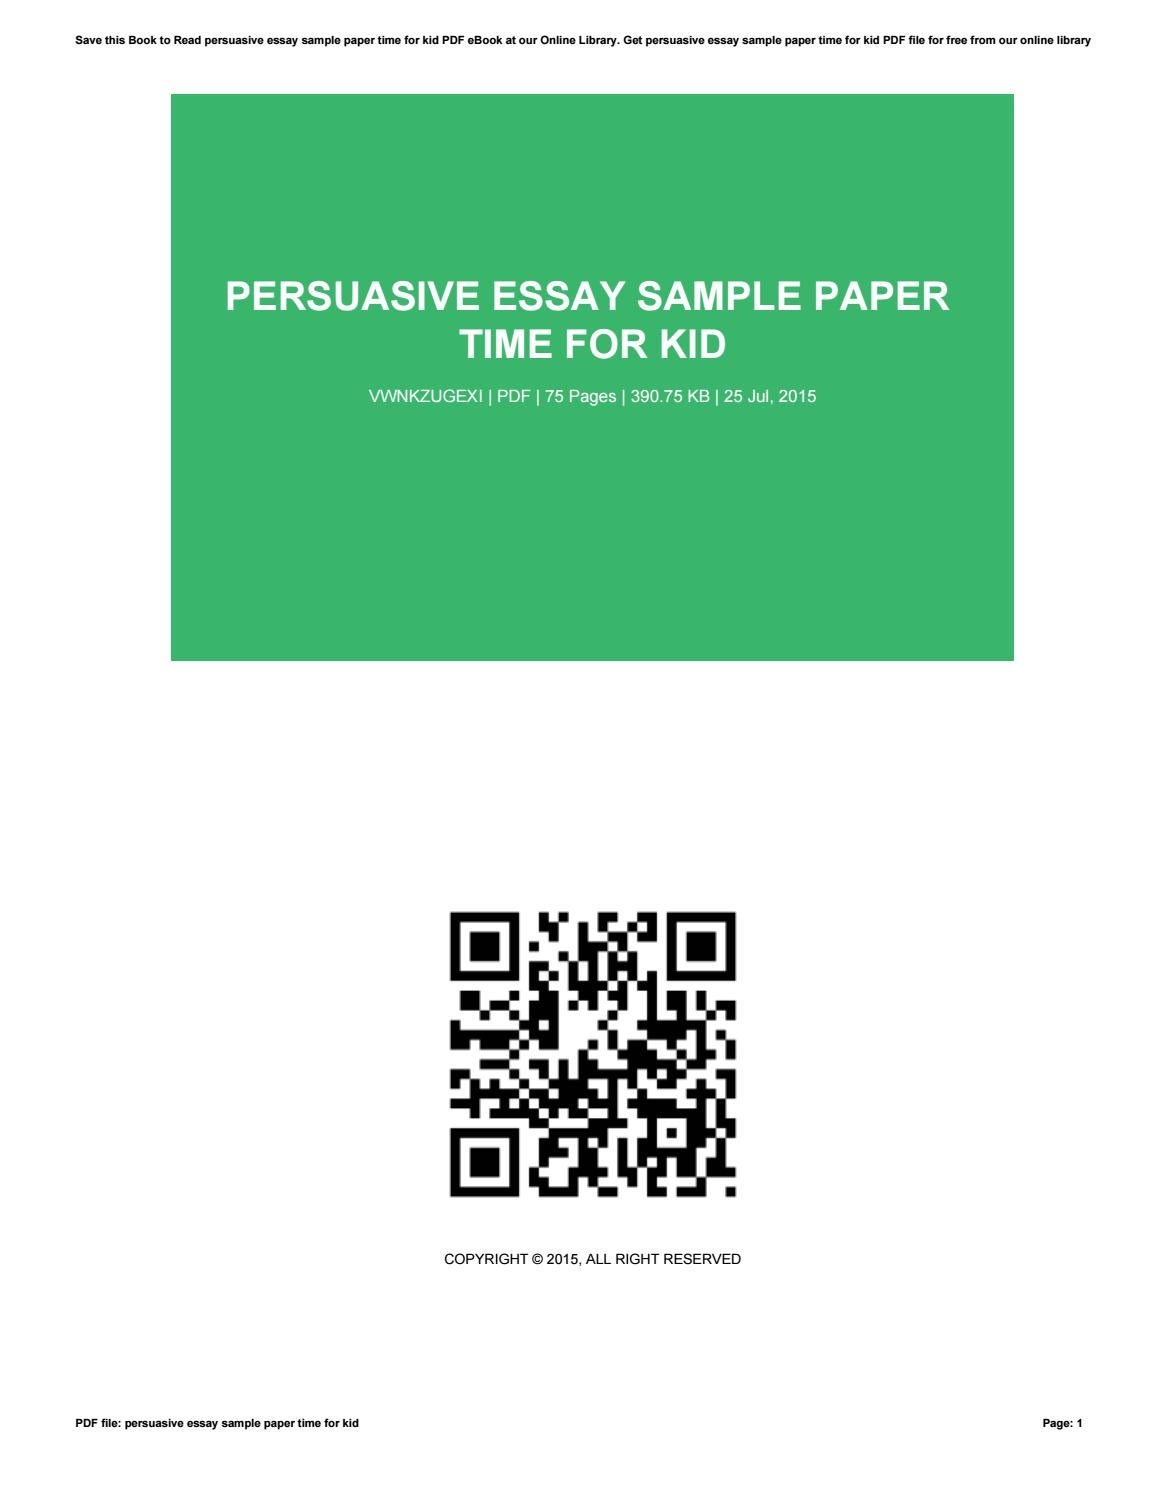 Essays Topics In English Persuasive Essay Sample Paper Time For Kid By Carltonbartsch Page  Persuasive  Essay Sample Paper Time Essay On My Family In English also English As A World Language Essay Persuasive Essay Sample Paper What Is A Good Persuasive Essay Reflective Essay On English Class